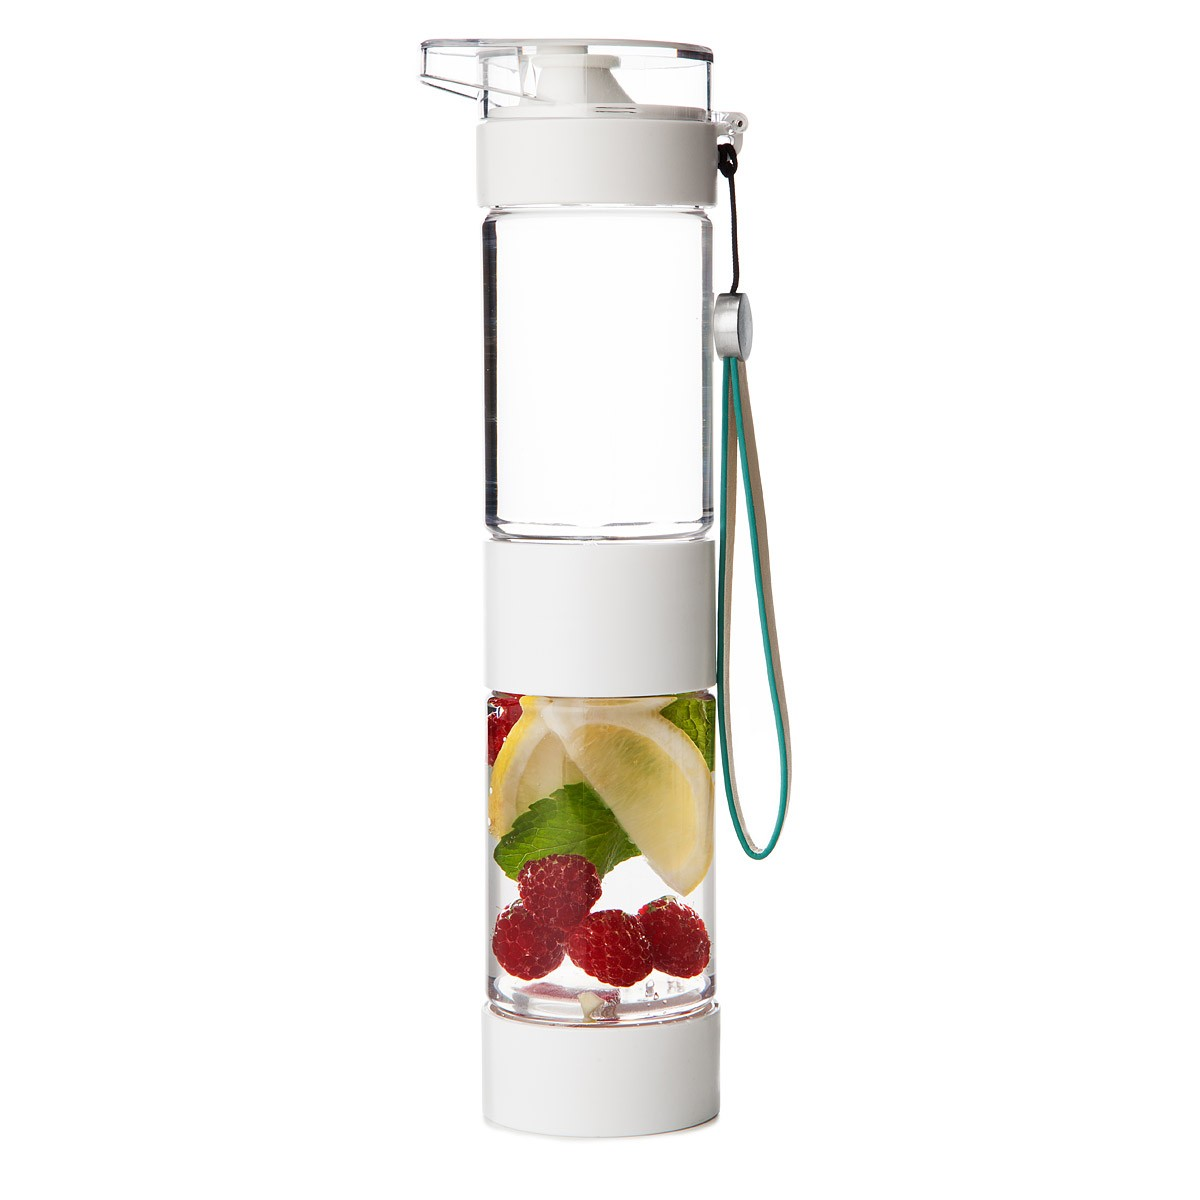 Water Bottle You Put Fruit In: Uniquely Fruit-infused Water